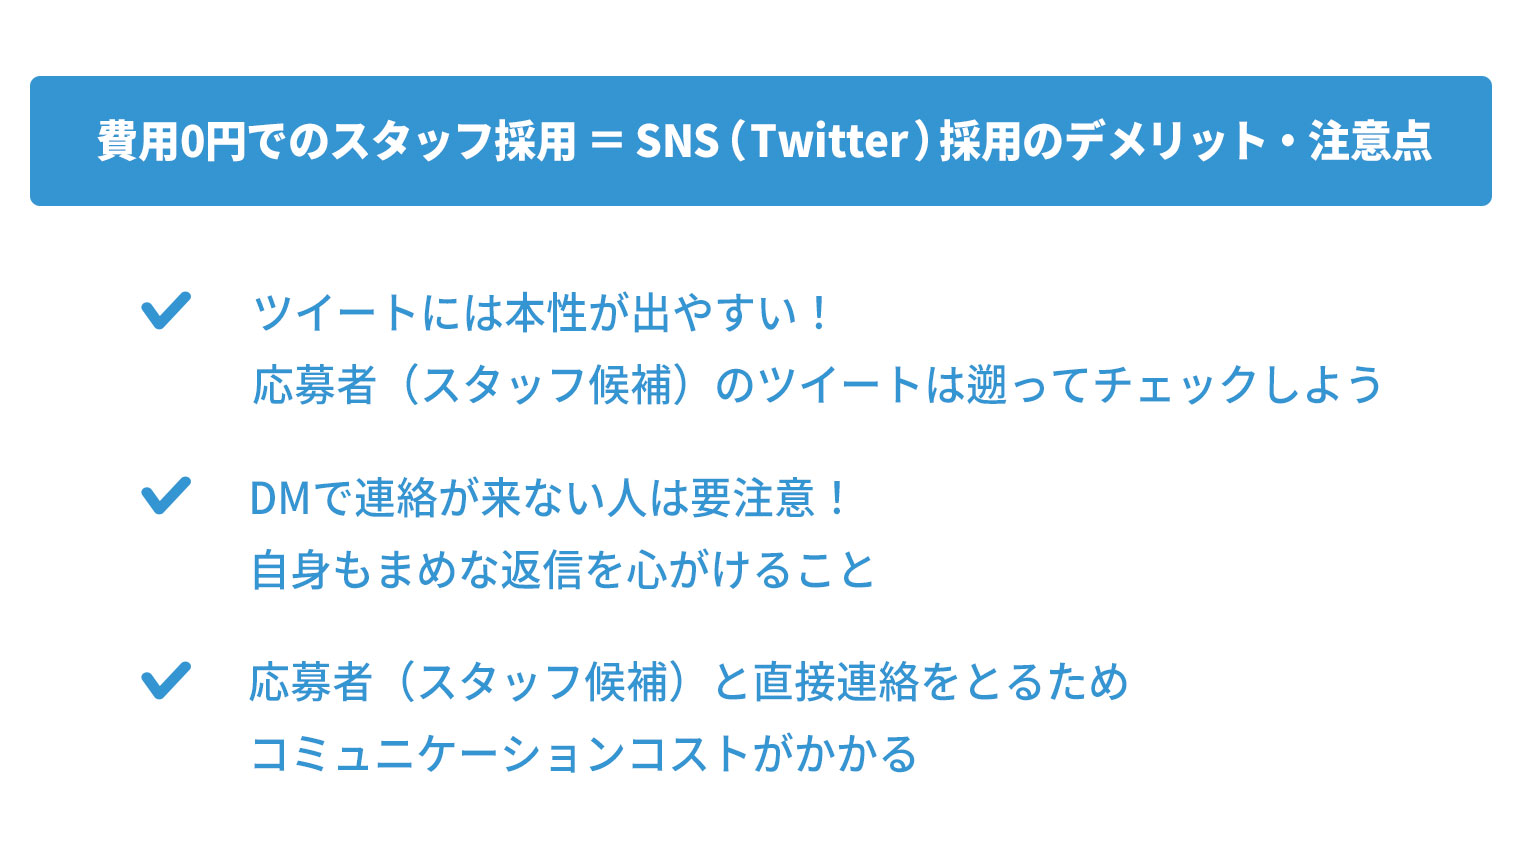 SNS採用のデメリット